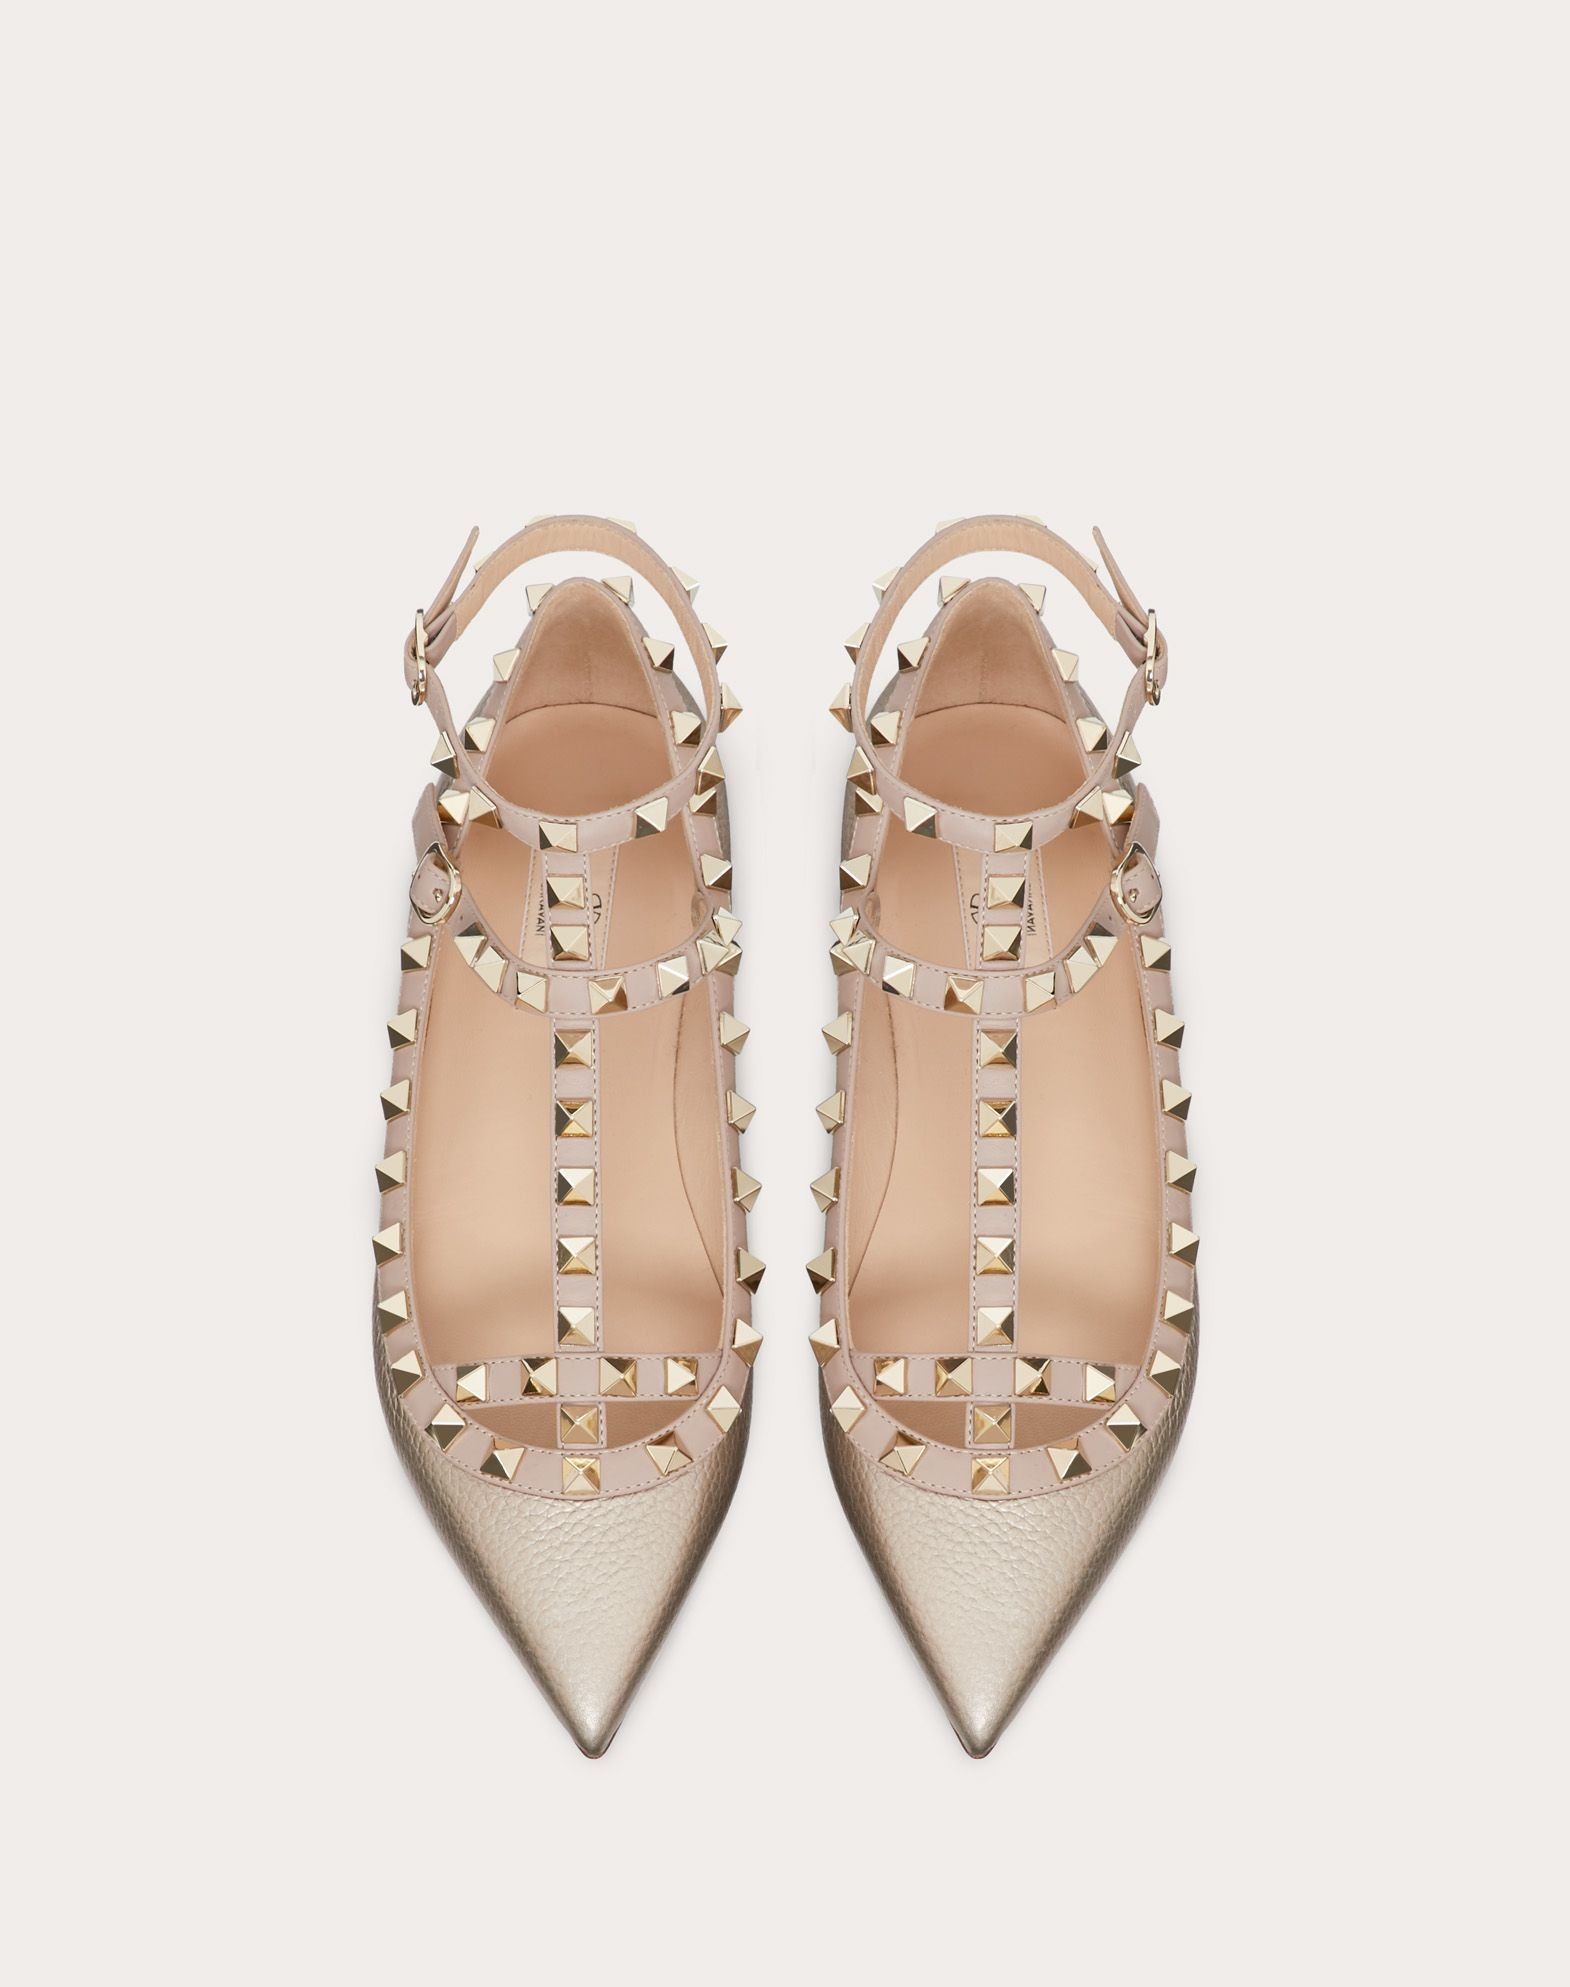 VALENTINO Studs Two-tone pattern Wrapping straps closure Leather sole Textured leather Narrow toeline  11049192qp